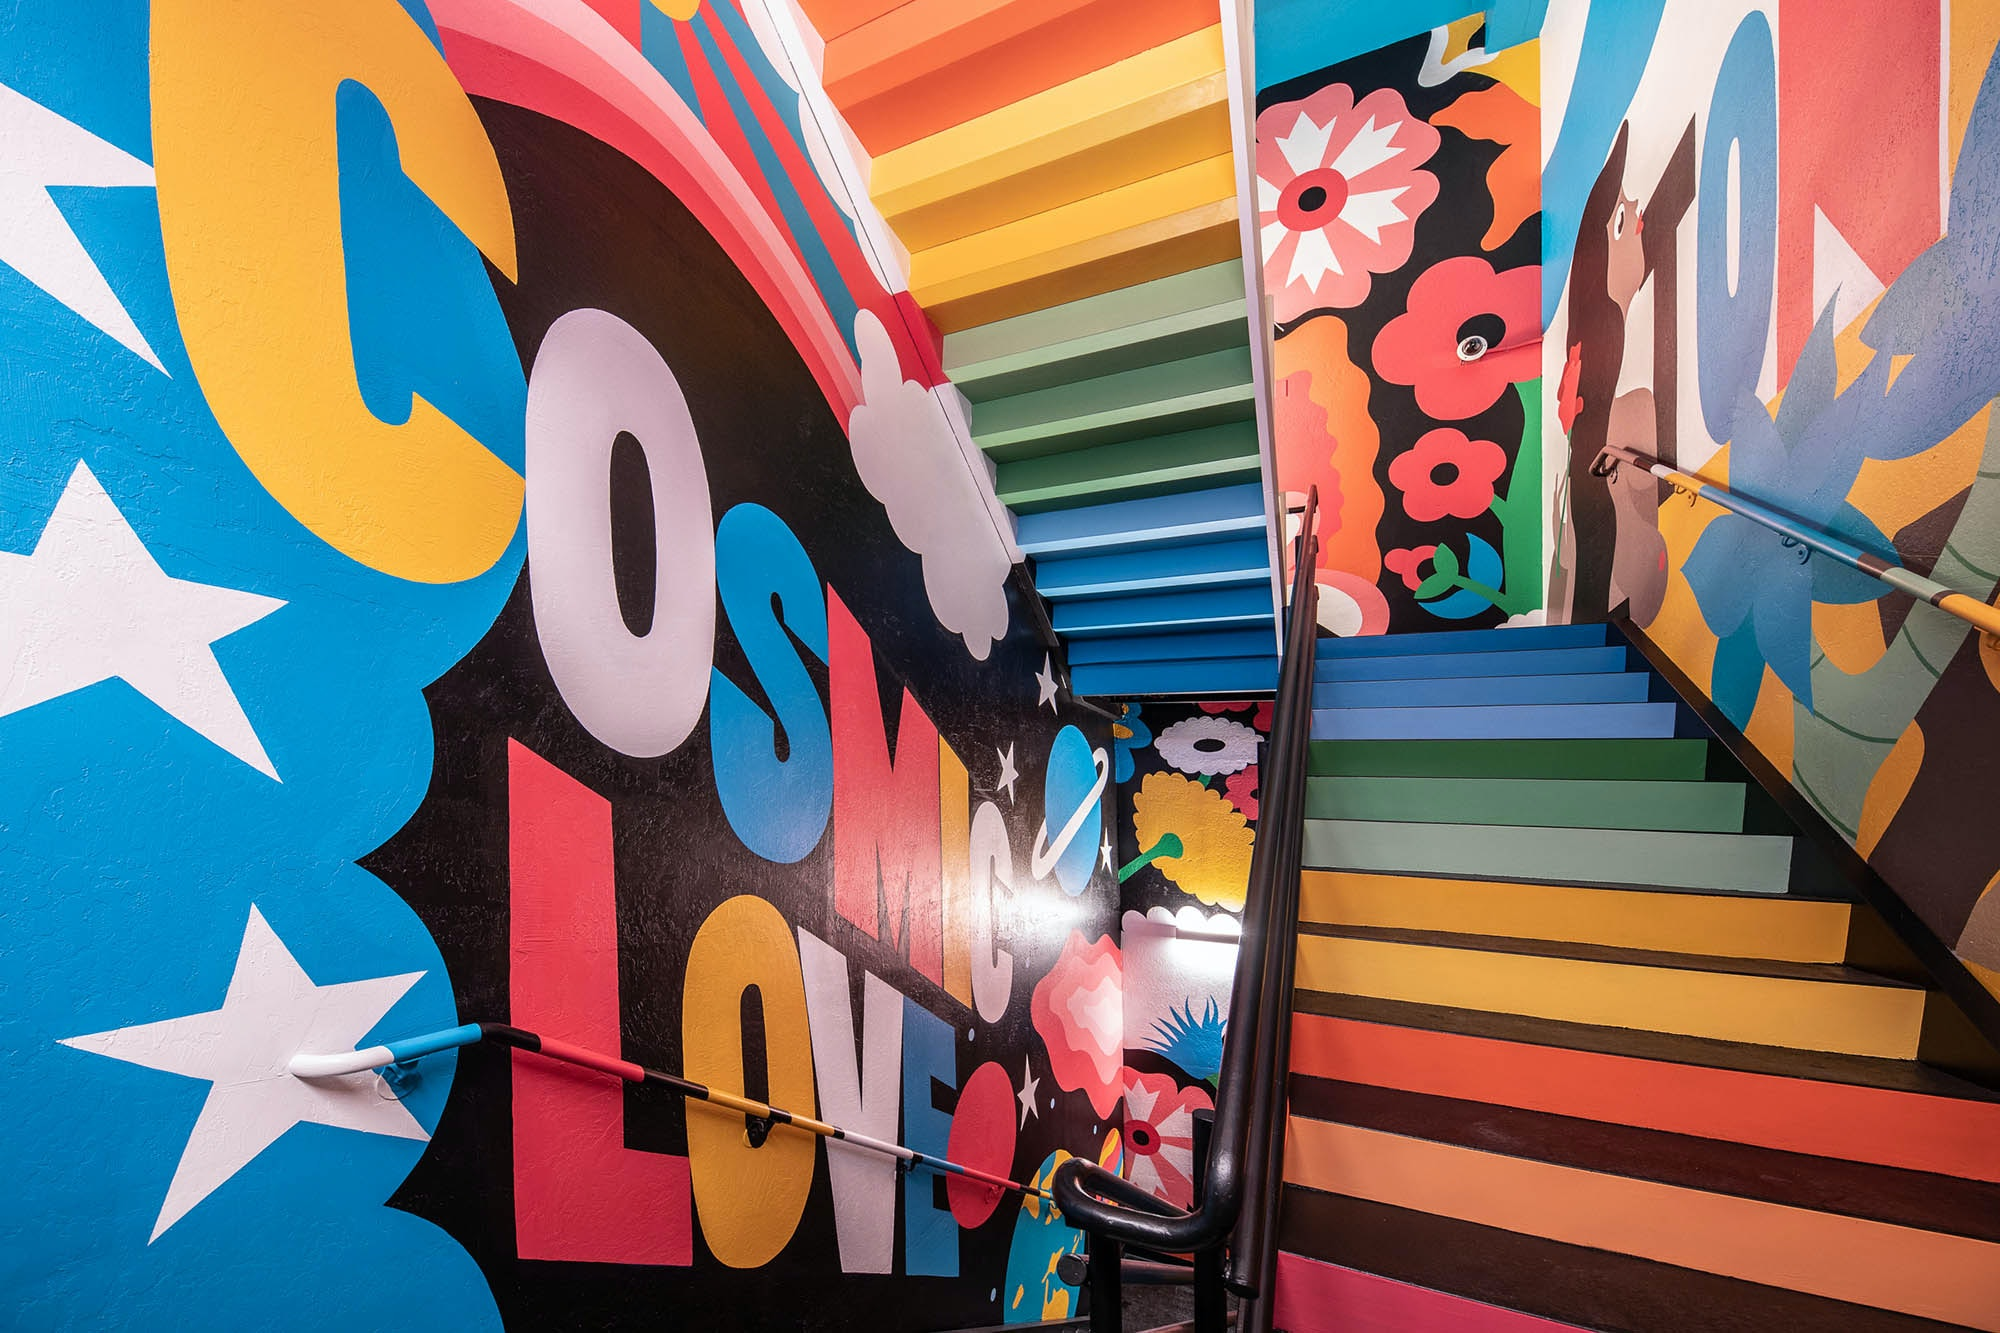 Part of the $620 million makeover at Palms included this secret staircase between Vetri Cucina and APEX Social Club with murals by Dabs Myla, the Australian pop-art team.